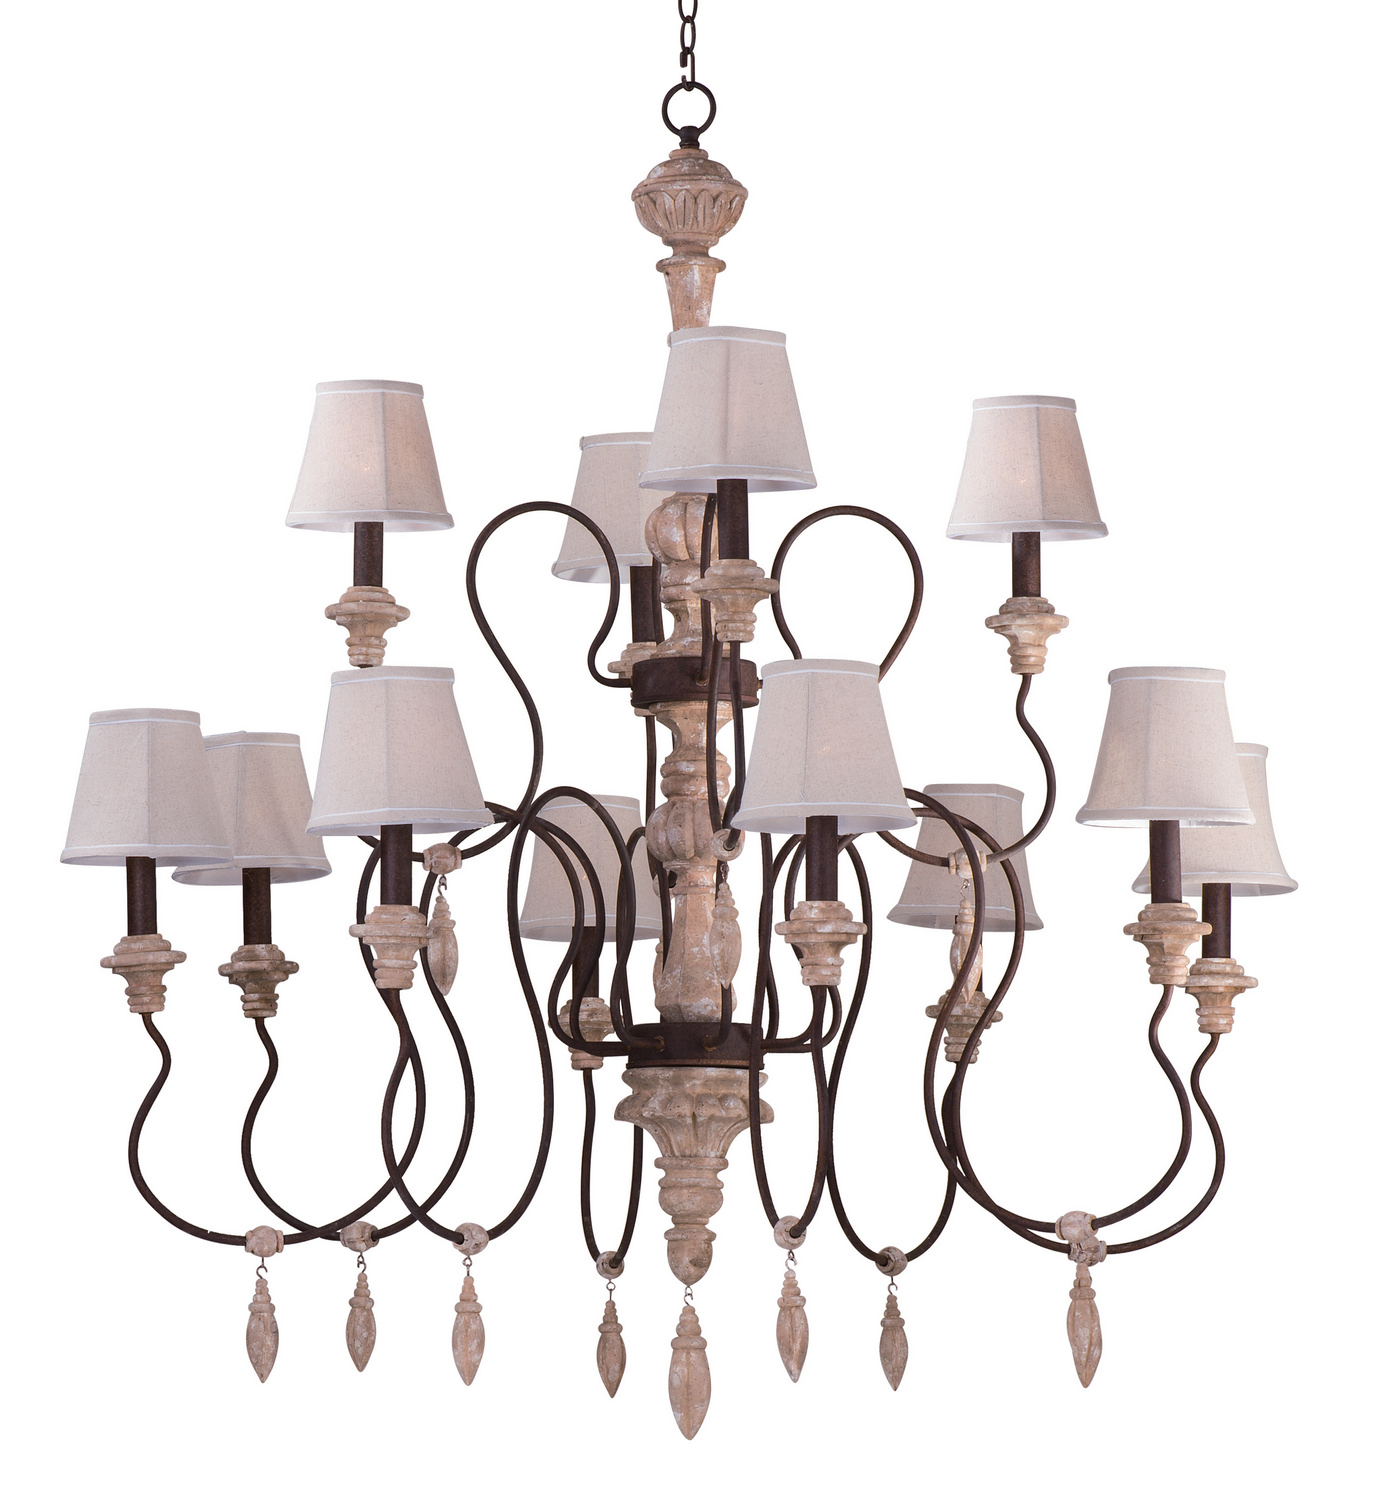 12 Light Chandelier from the Olde World collection by Maxim 39609SWSHD396